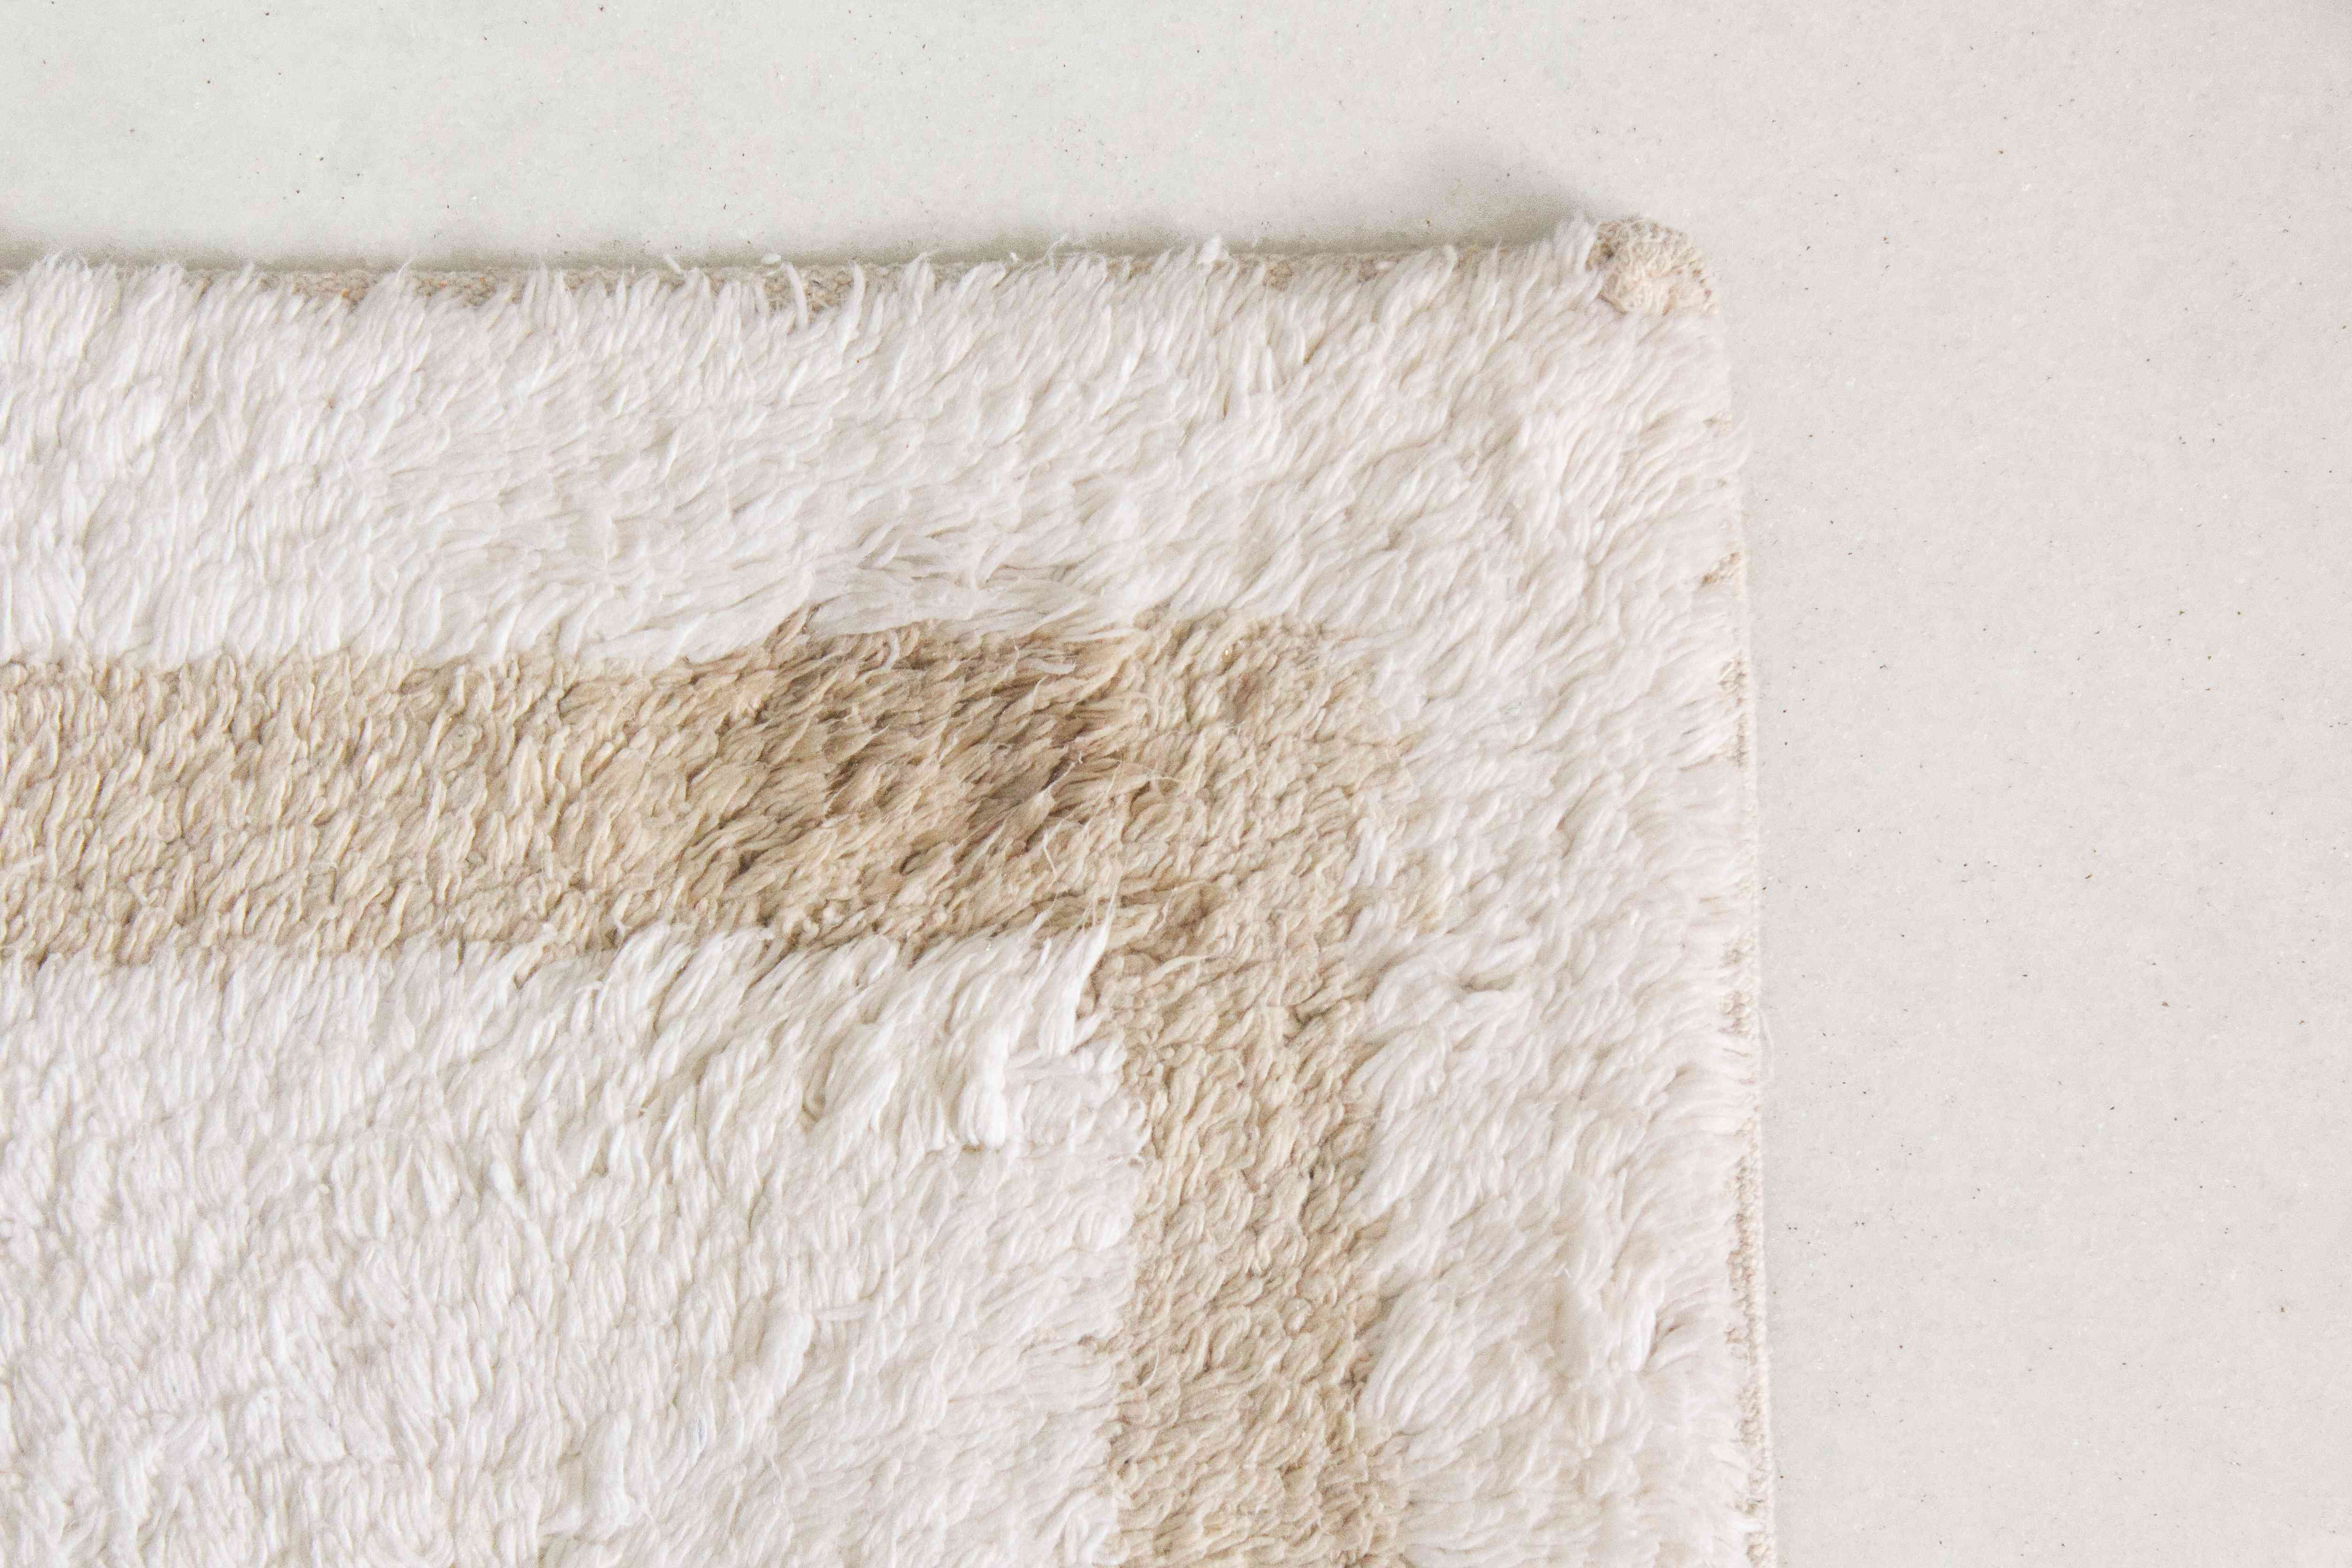 letting the bathroom rug air dry after stain removal